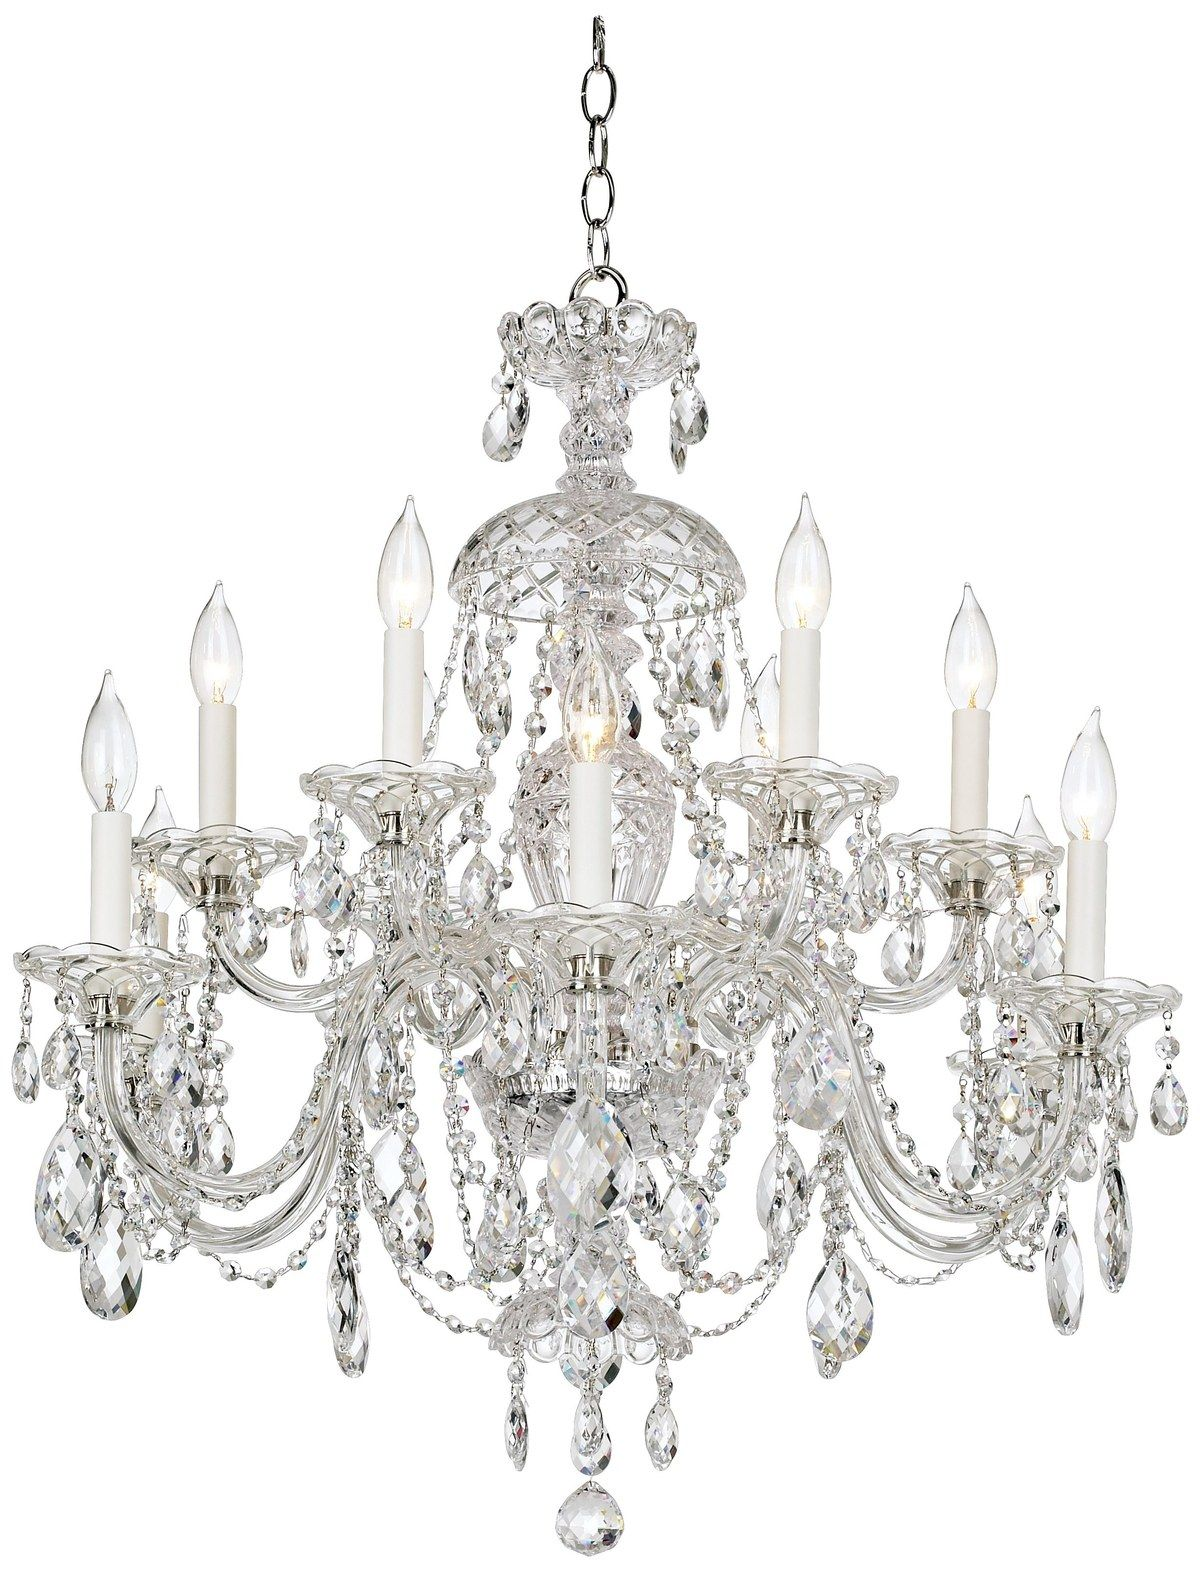 12 crystal chandeliers to add sparkle to any room lights pinterest chandeliers crystals for Crystal chandeliers for bedrooms